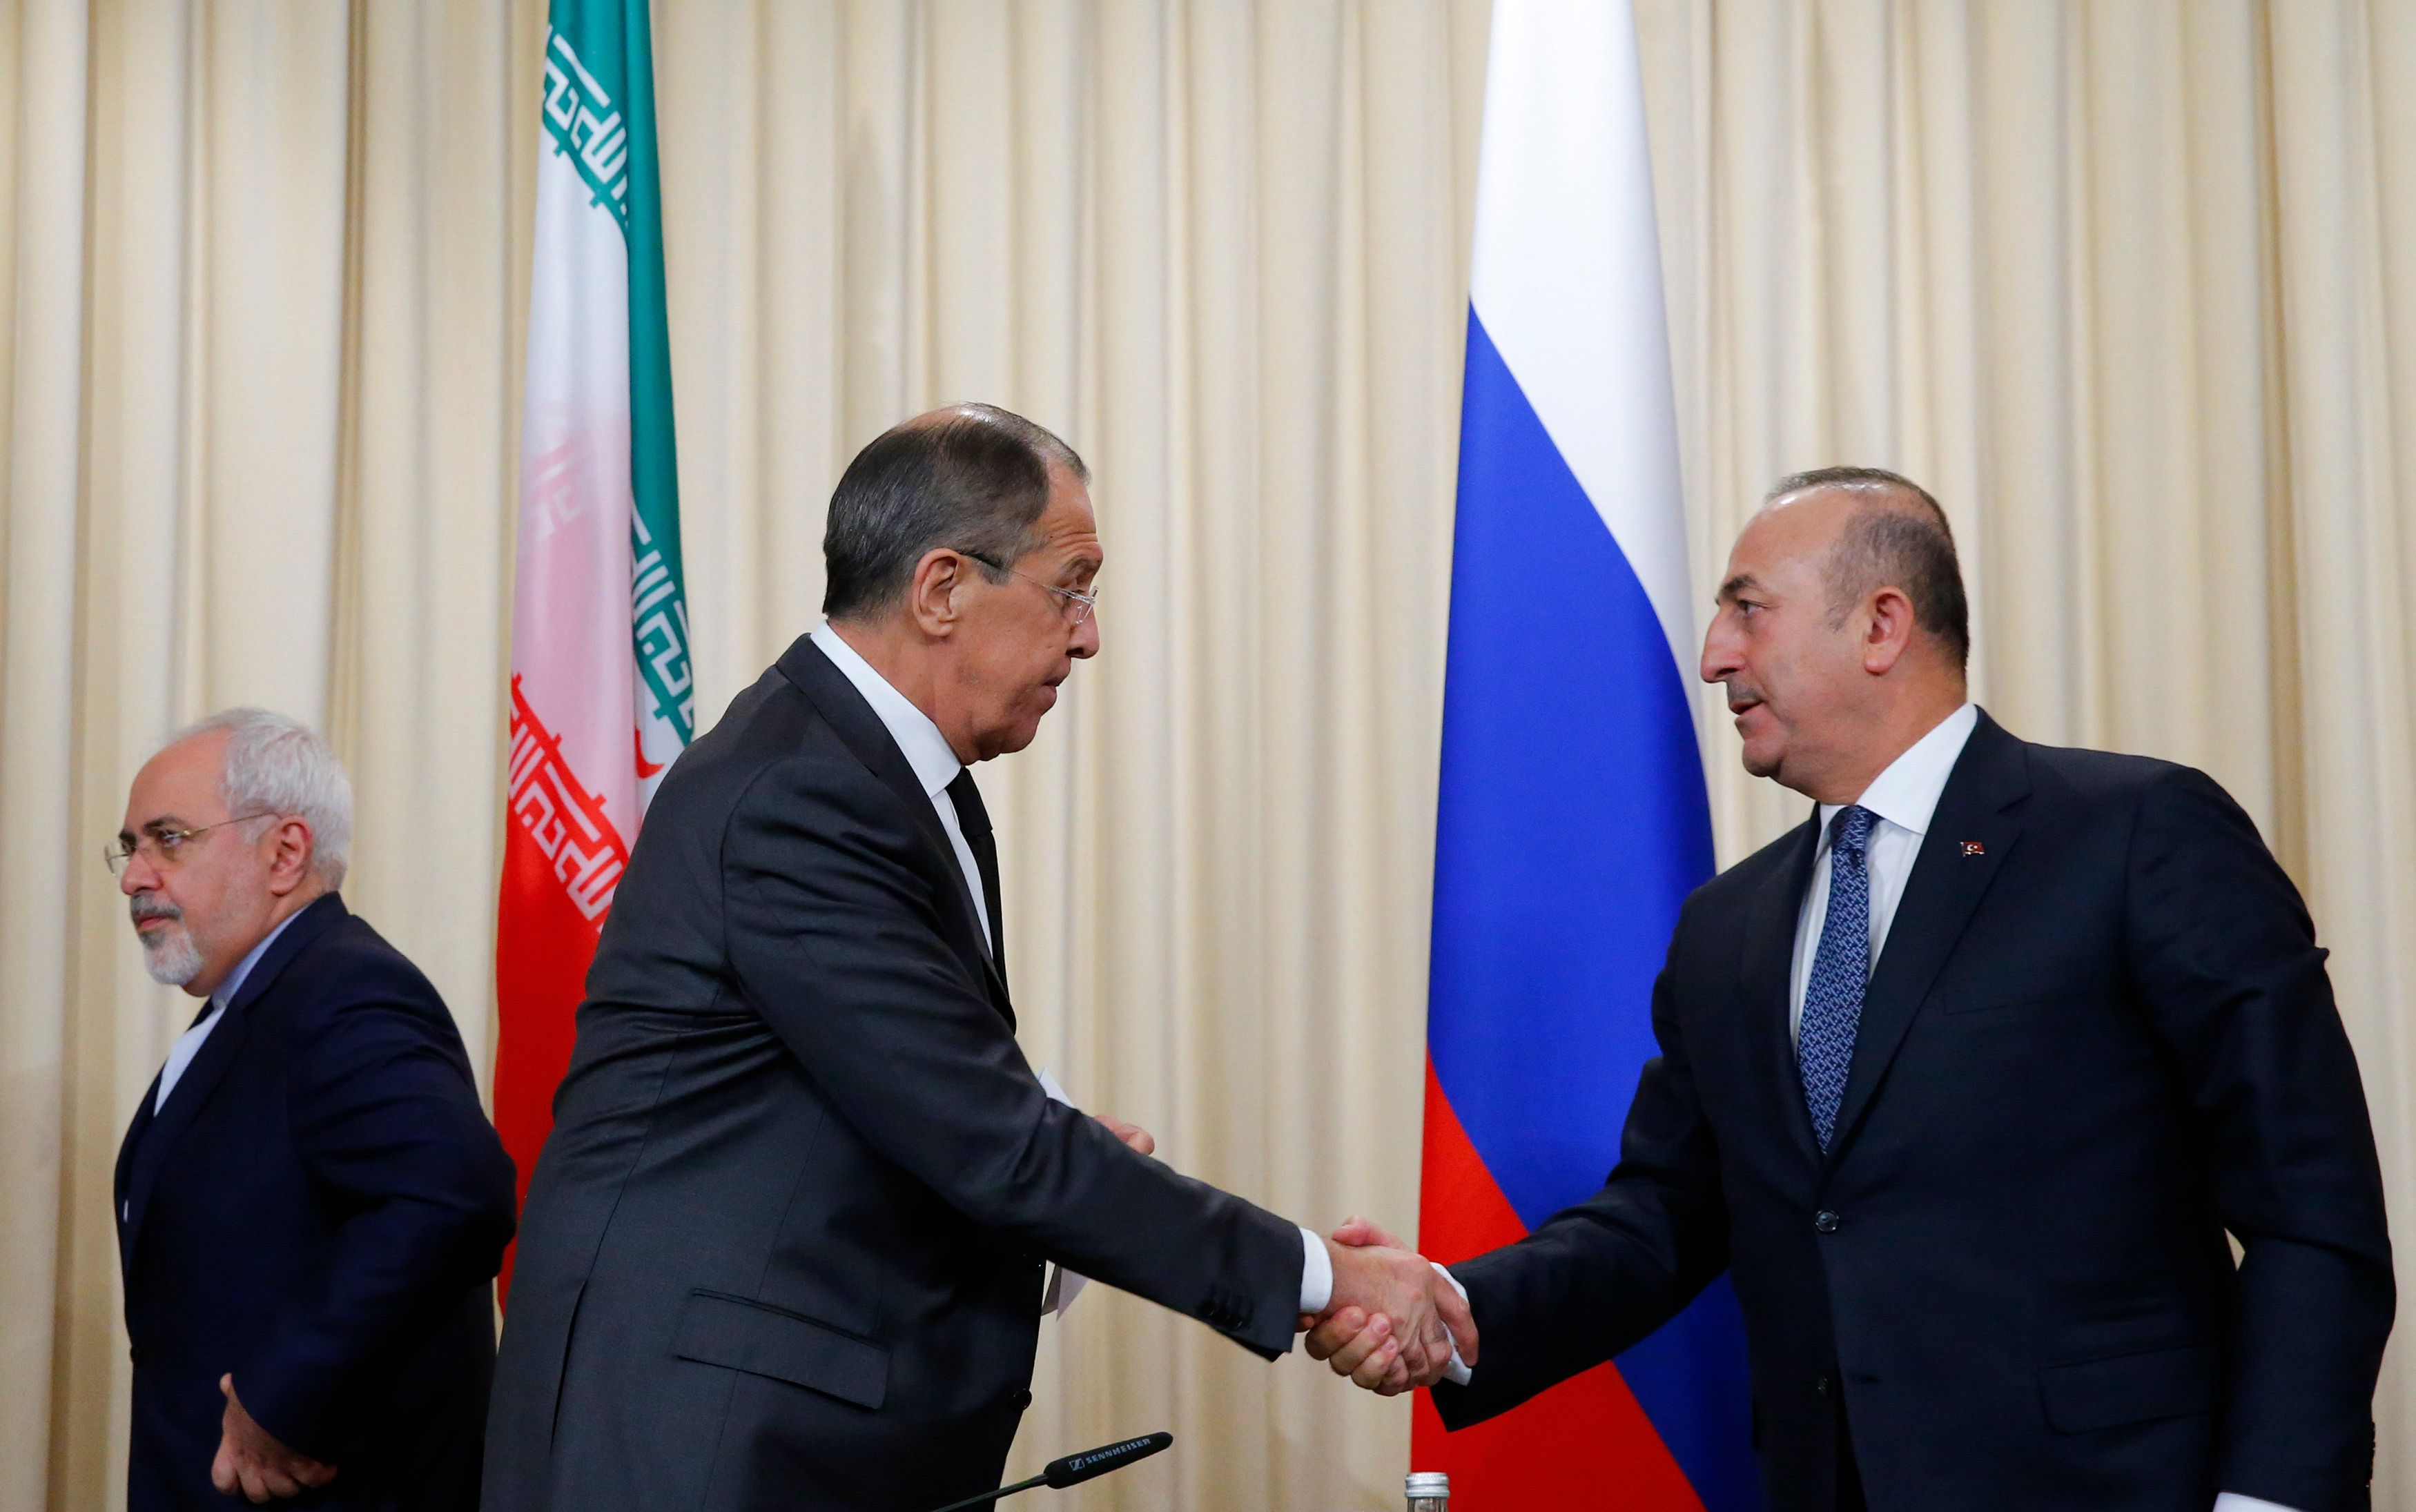 Foreign ministers, Sergei Lavrov, left, of Russia, and Mevlut Cavusoglu, right, of Turkey have reportedly agreed on a pr